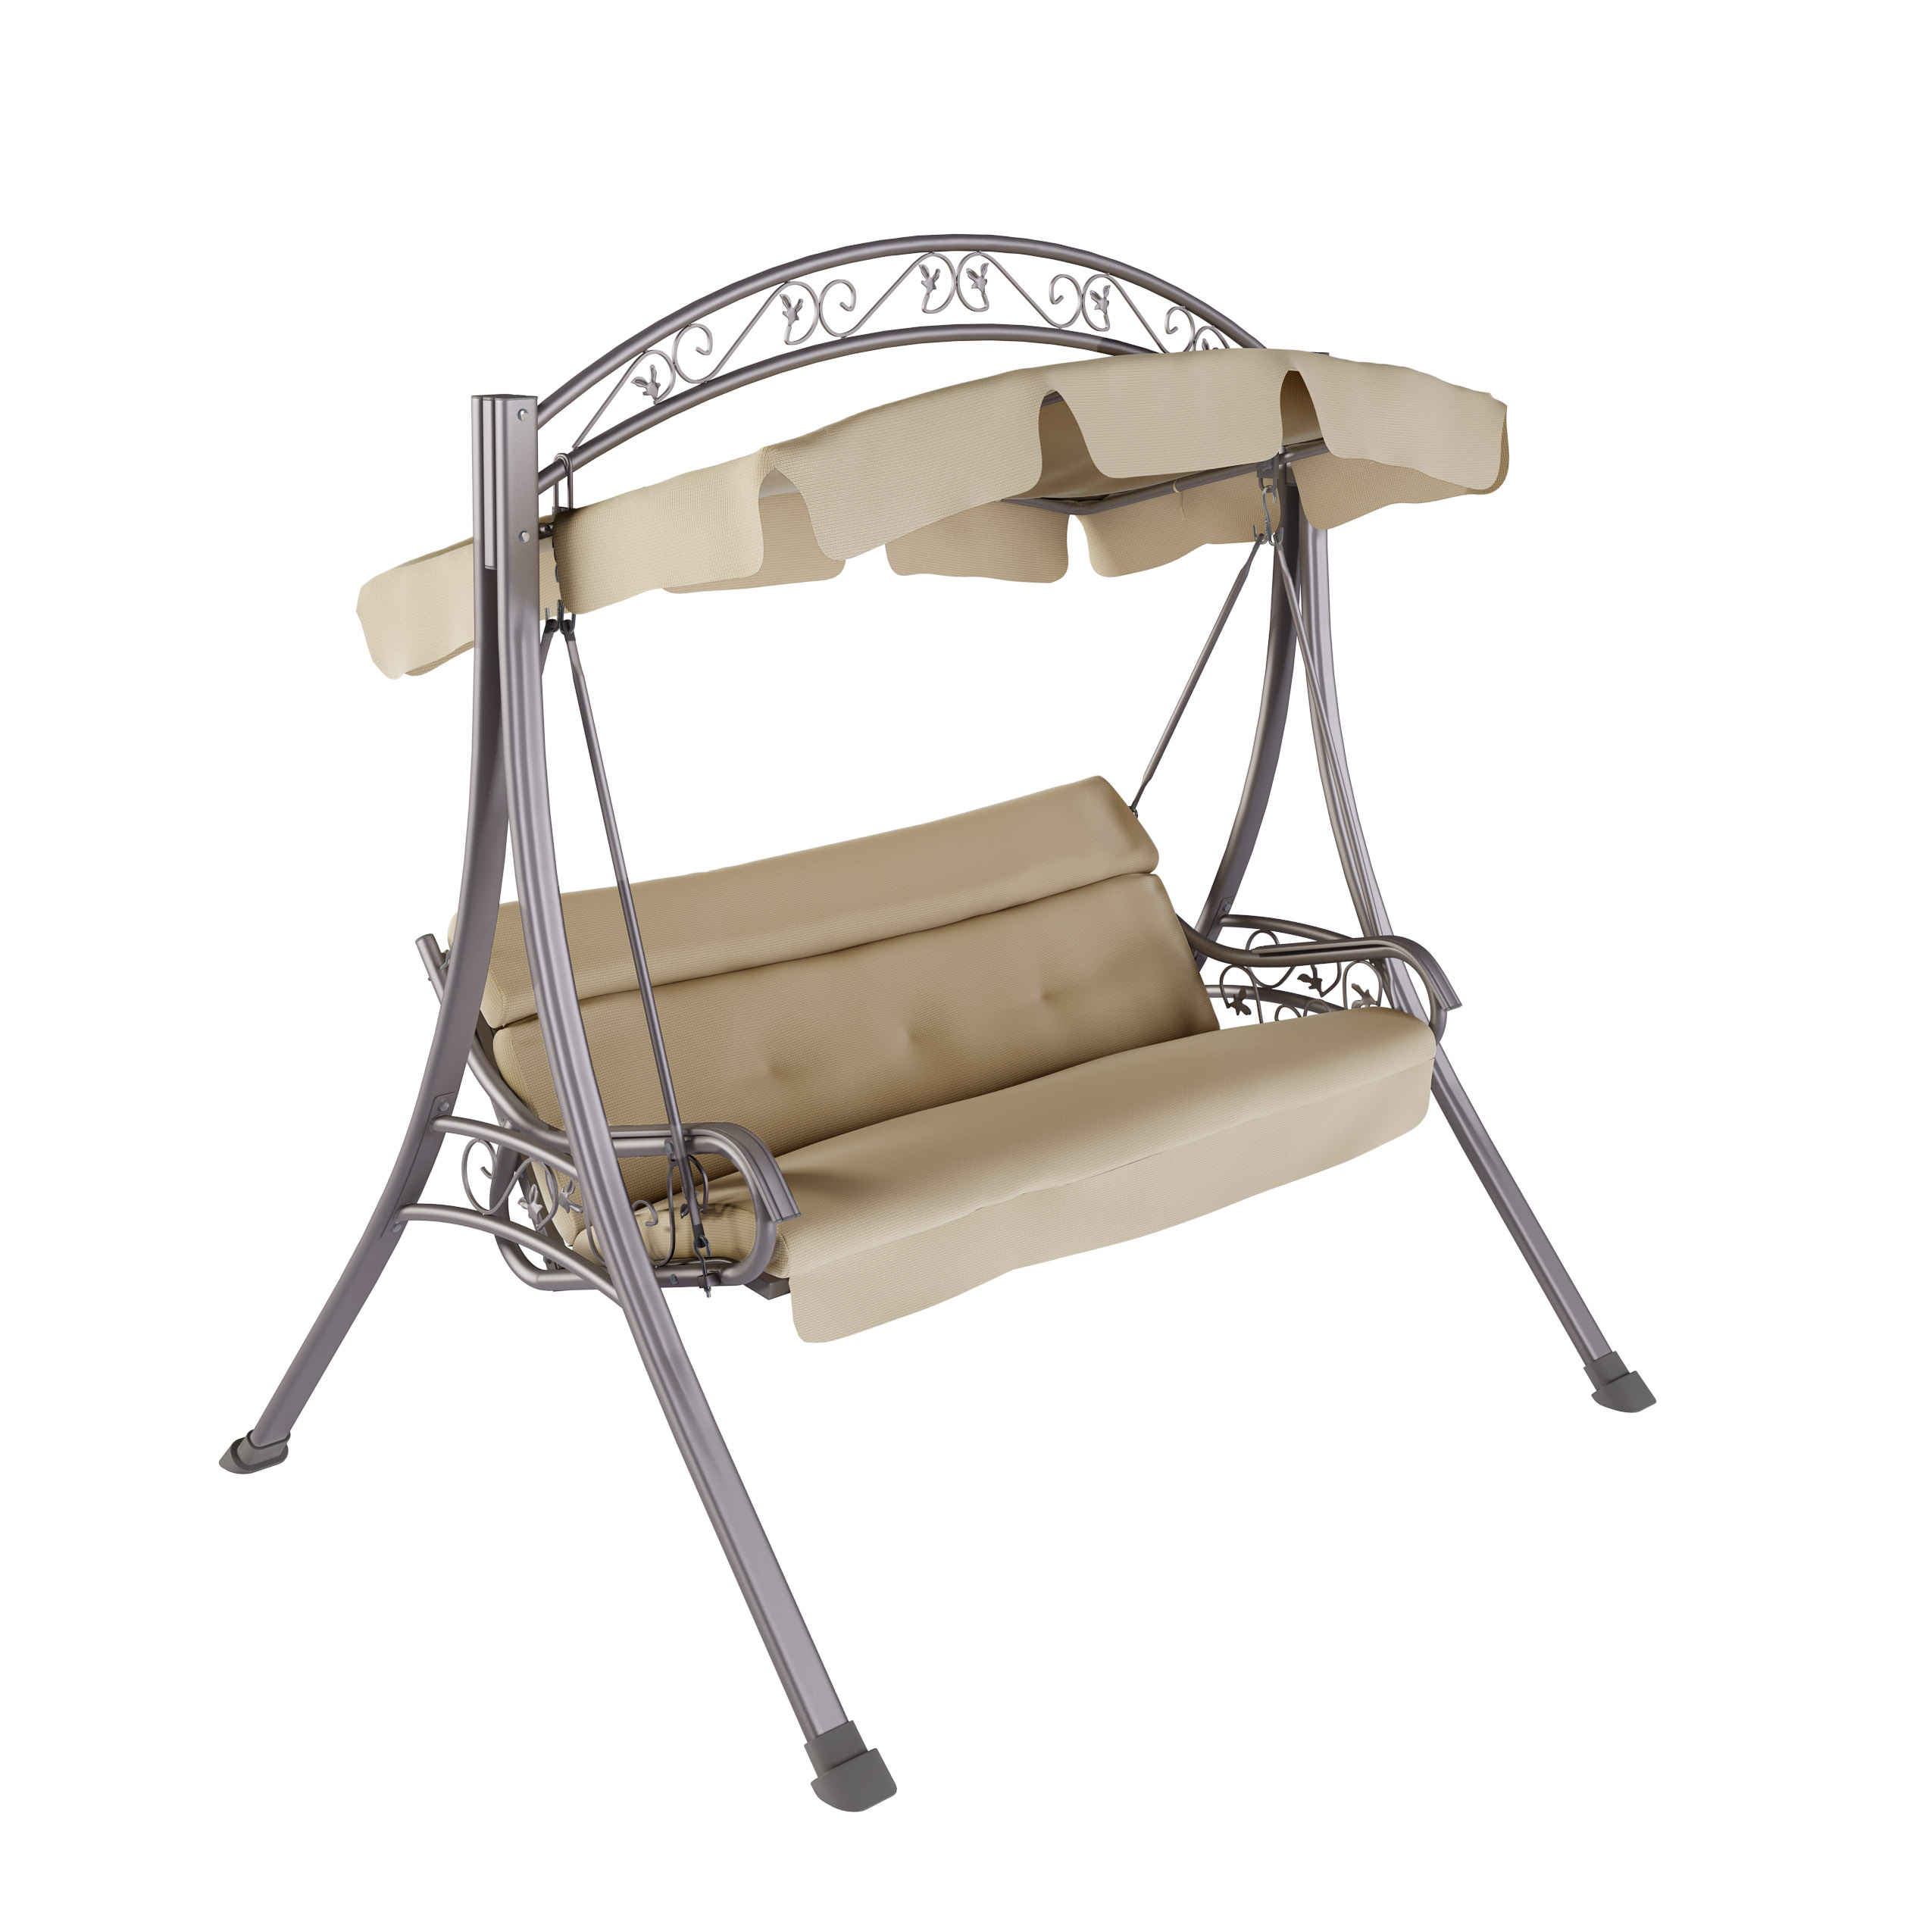 CorLiving Nantucket Patio Swing with Arched Canopy, Beige by CorLiving